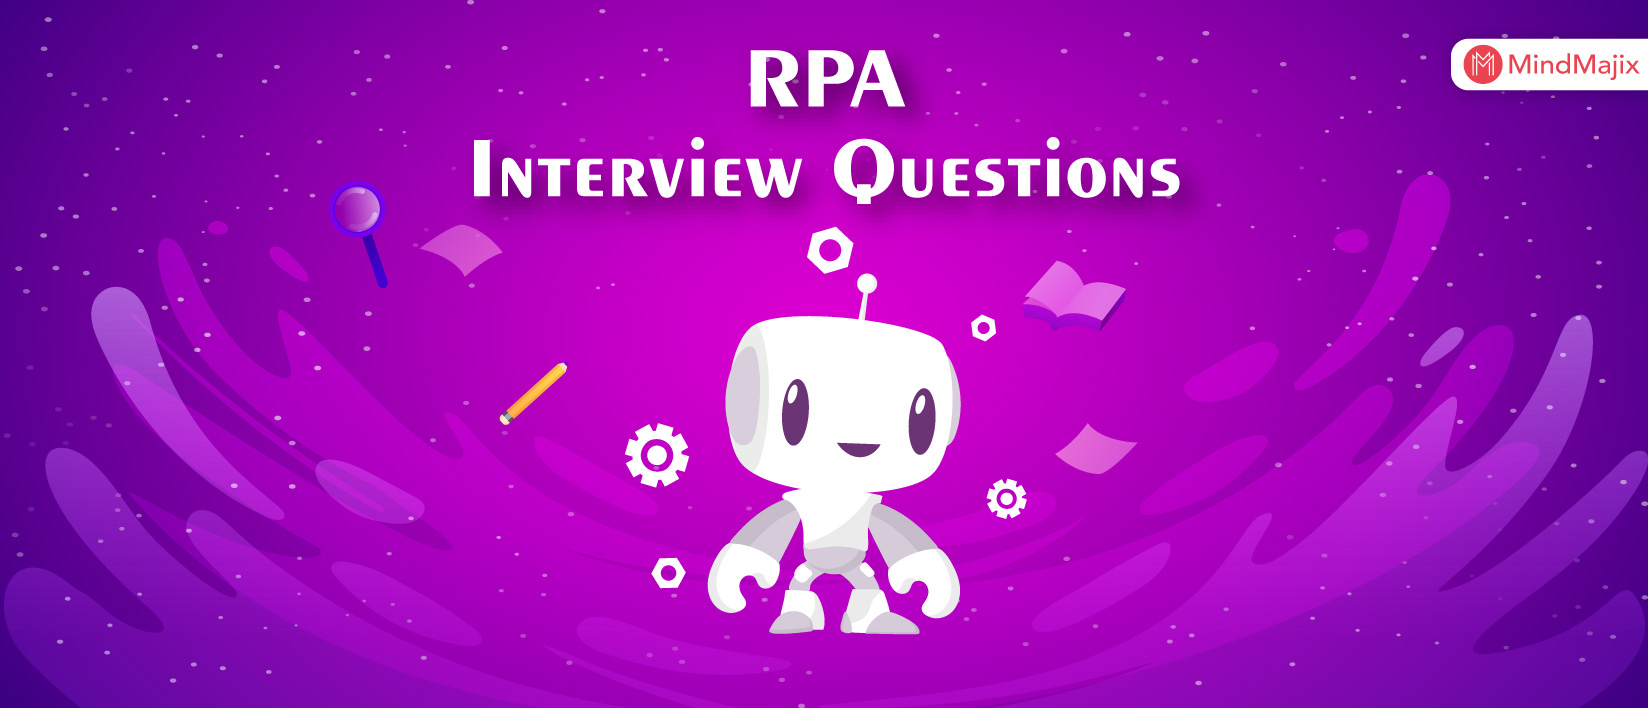 RPA Interview Questions